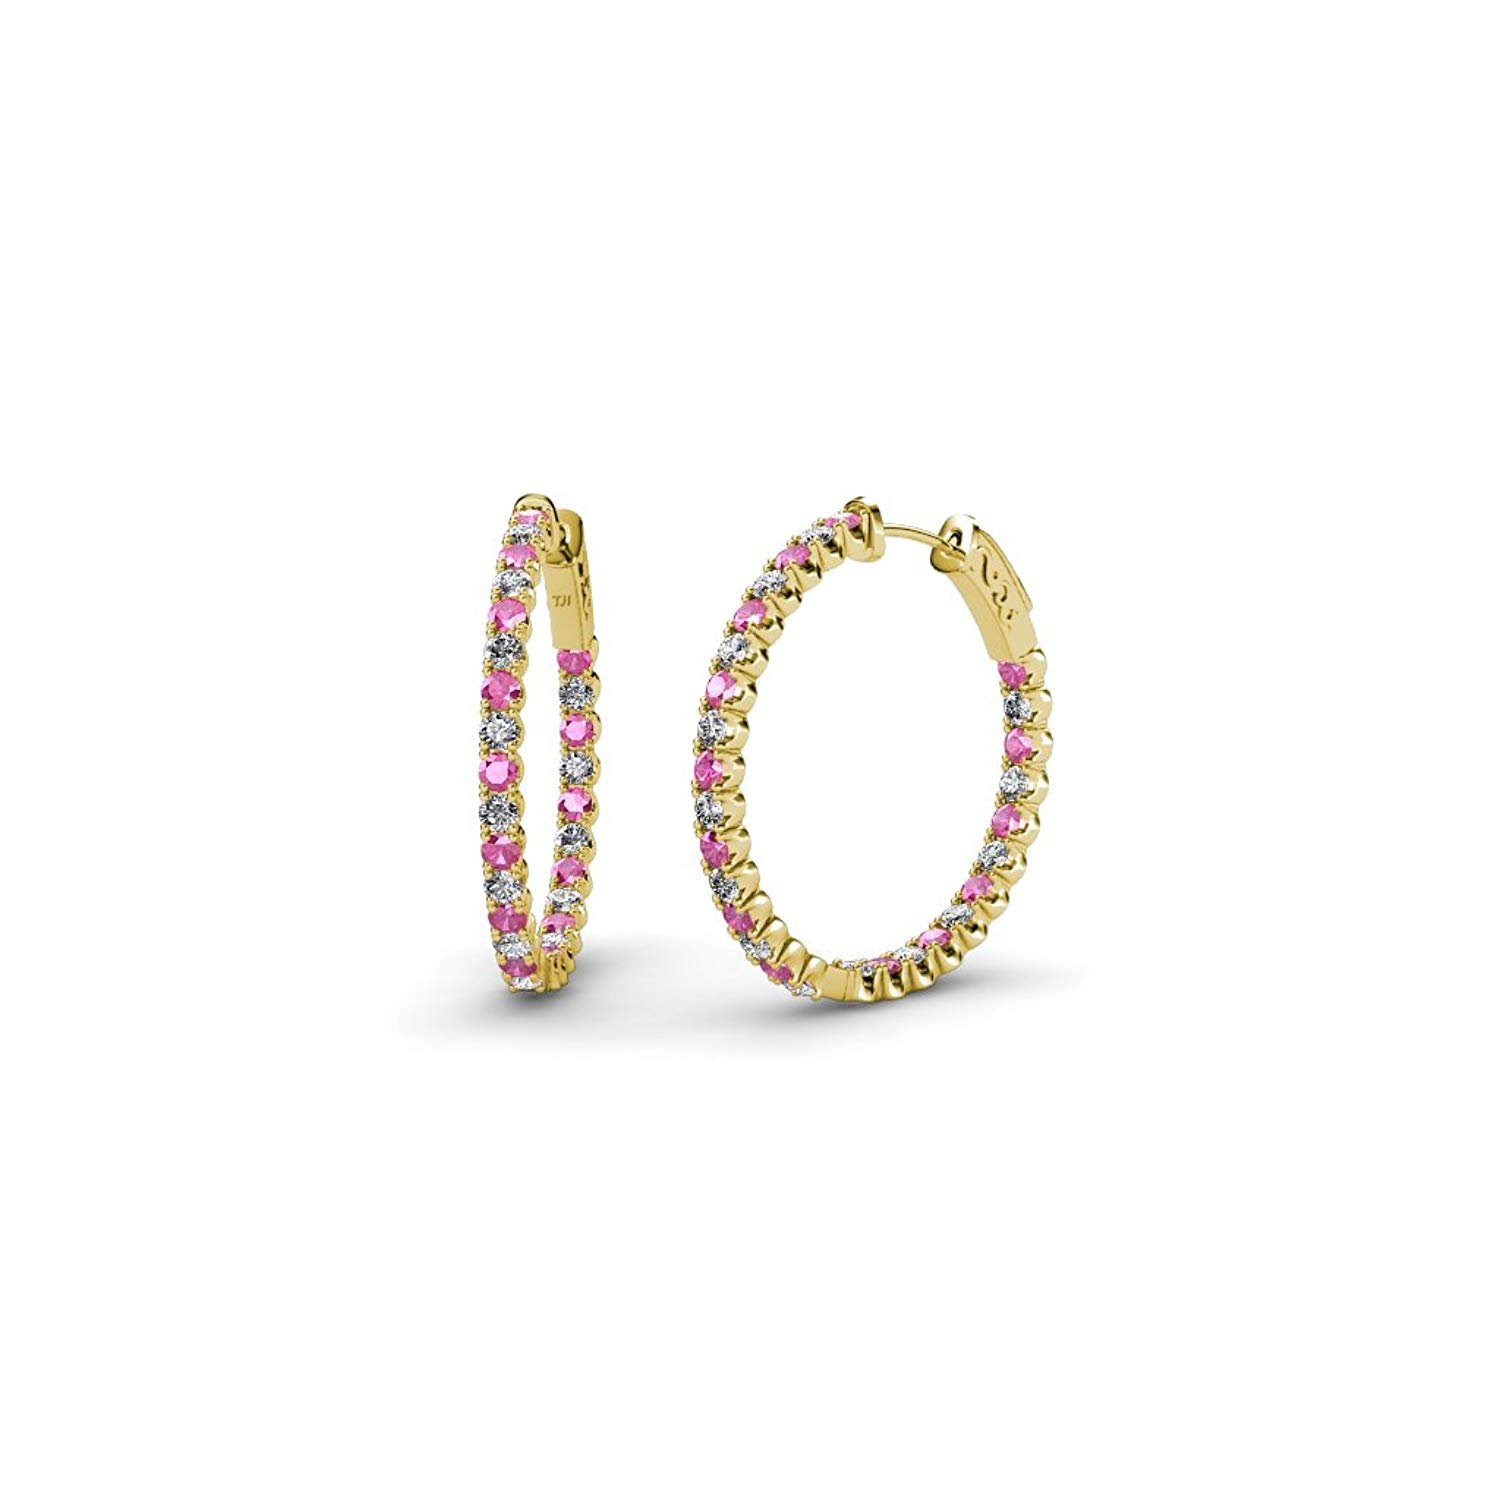 Pink Sapphire and Diamond (SI2-I1, G-H) Inside-Out Hoop Earrings 1.35 ct tw in 14K Yellow Gold by TriJewels